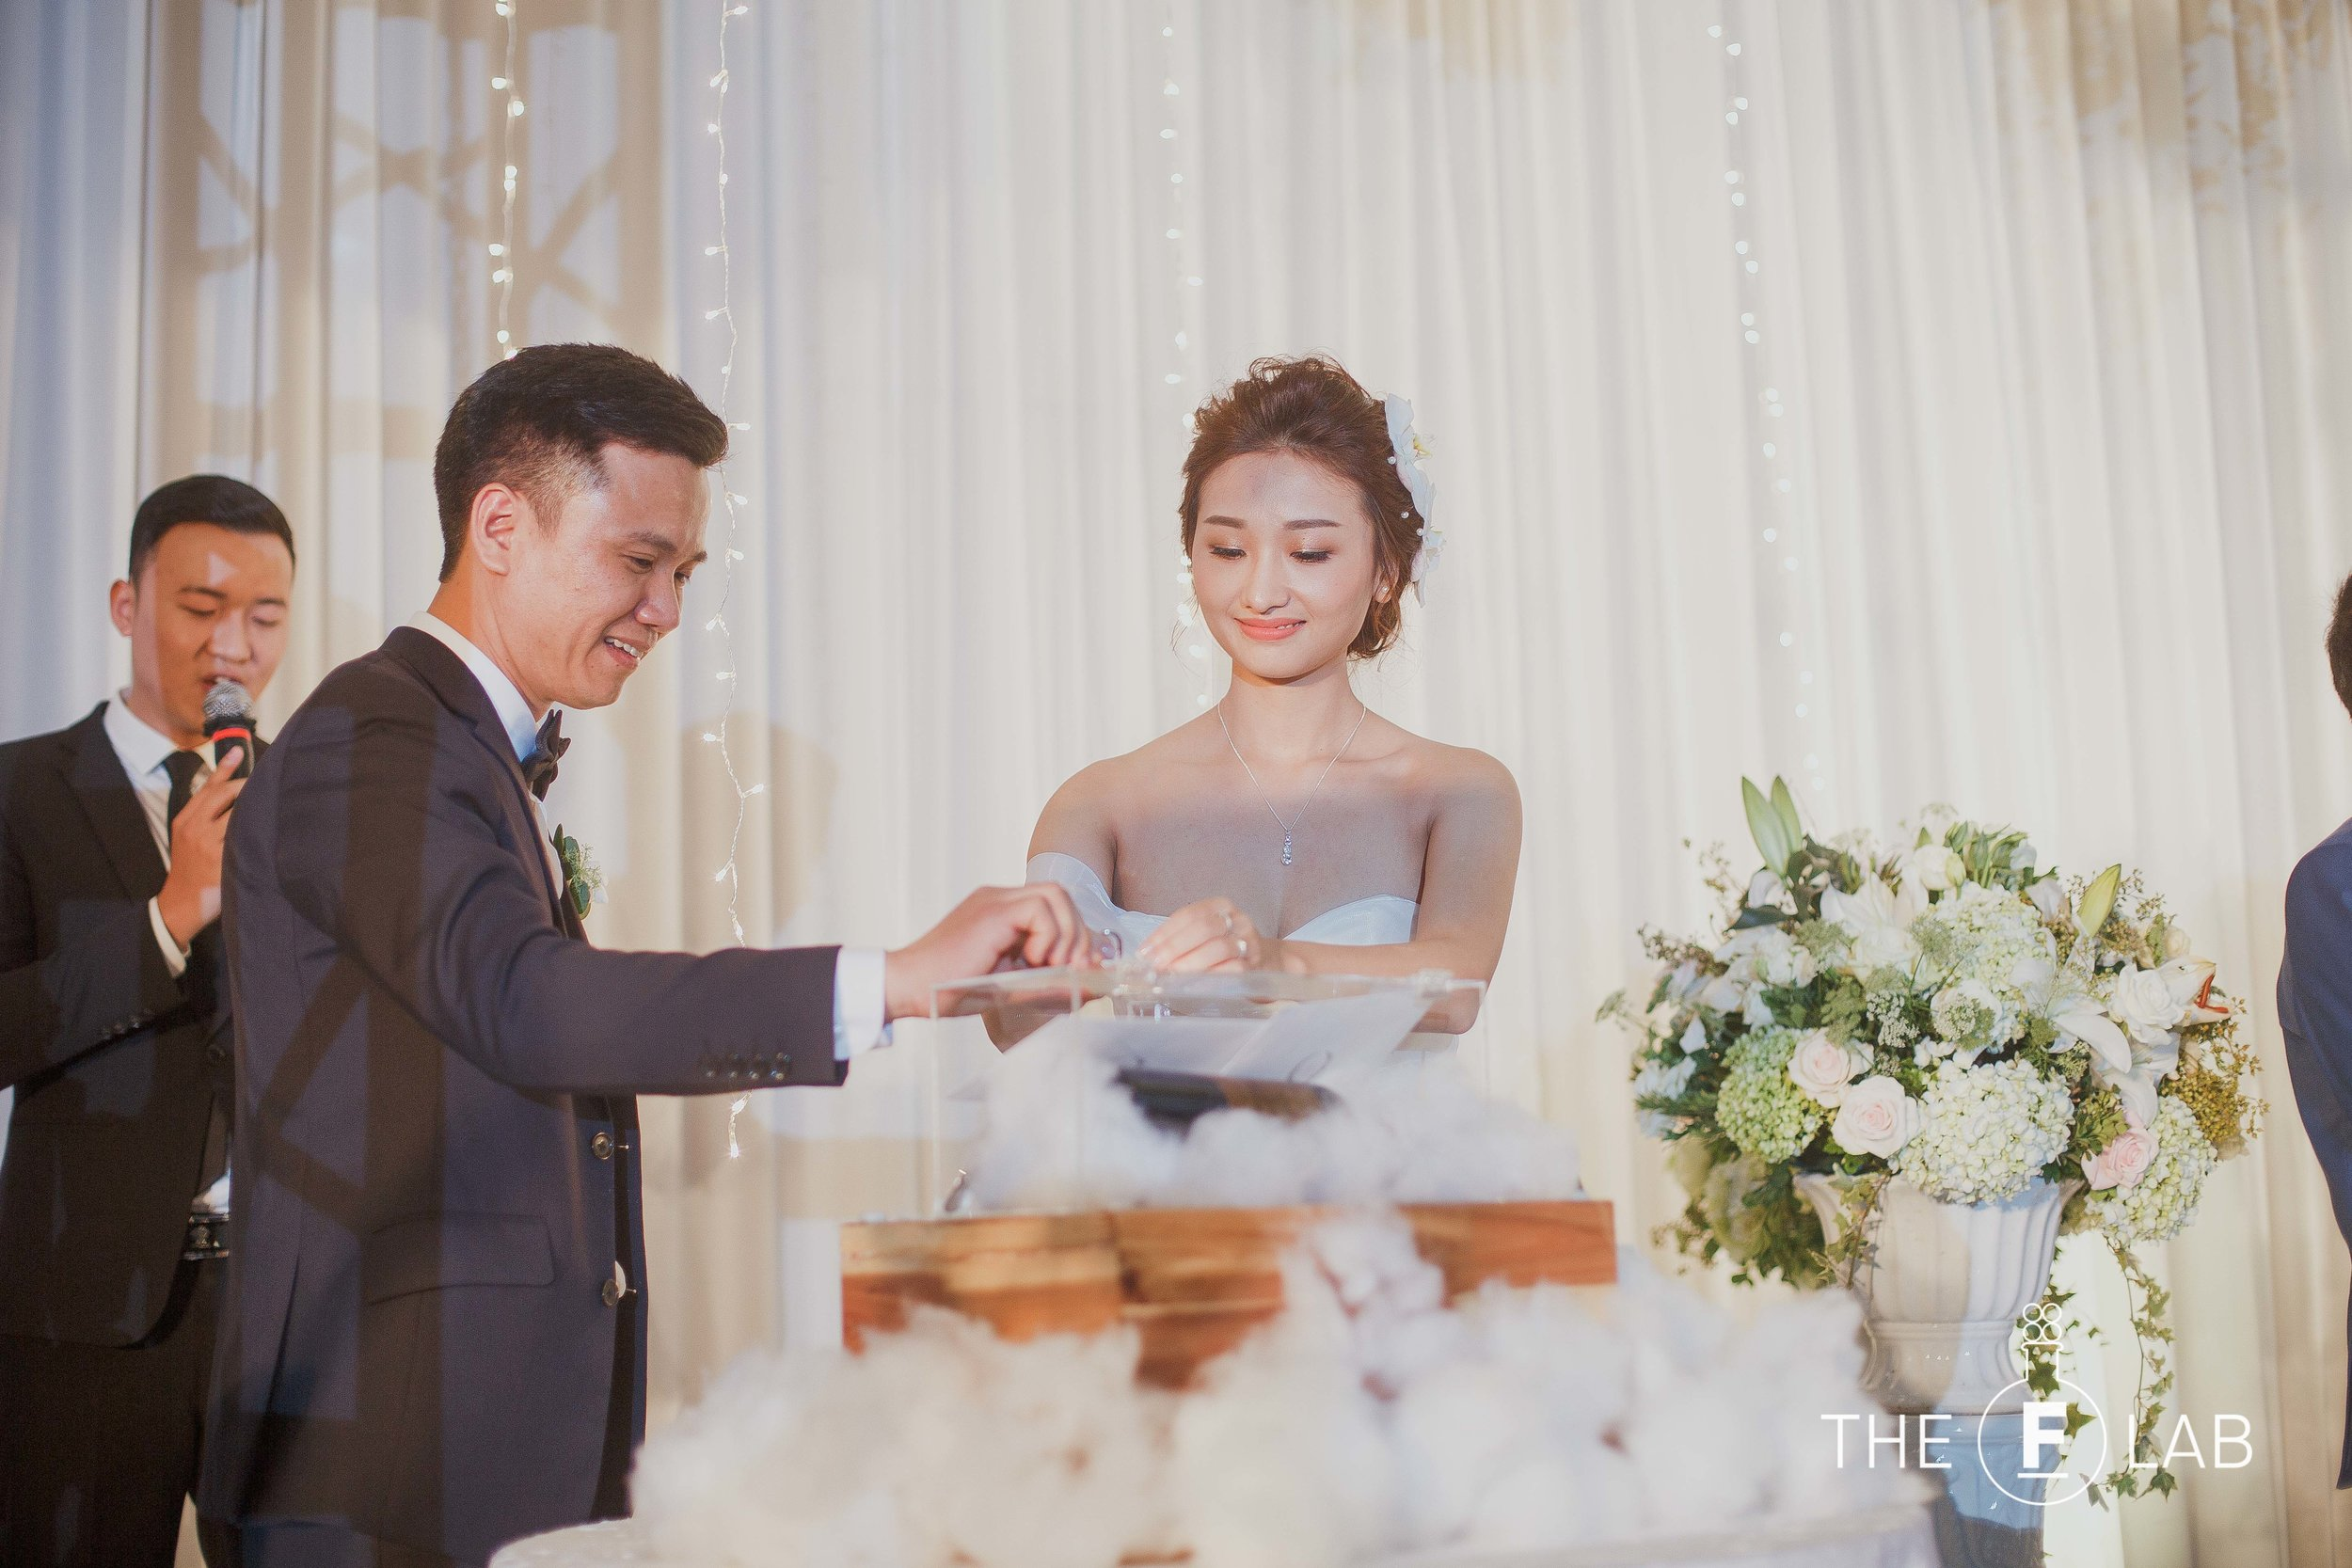 THE WINE BOX CEREMONY - Anh & Duong did not want to do the exchange of ring ceremony since they had already done it in their traditional Vietnamese wedding a week earlier. After researching together, they decided to opt for the wine box ceremony as our suggestion.